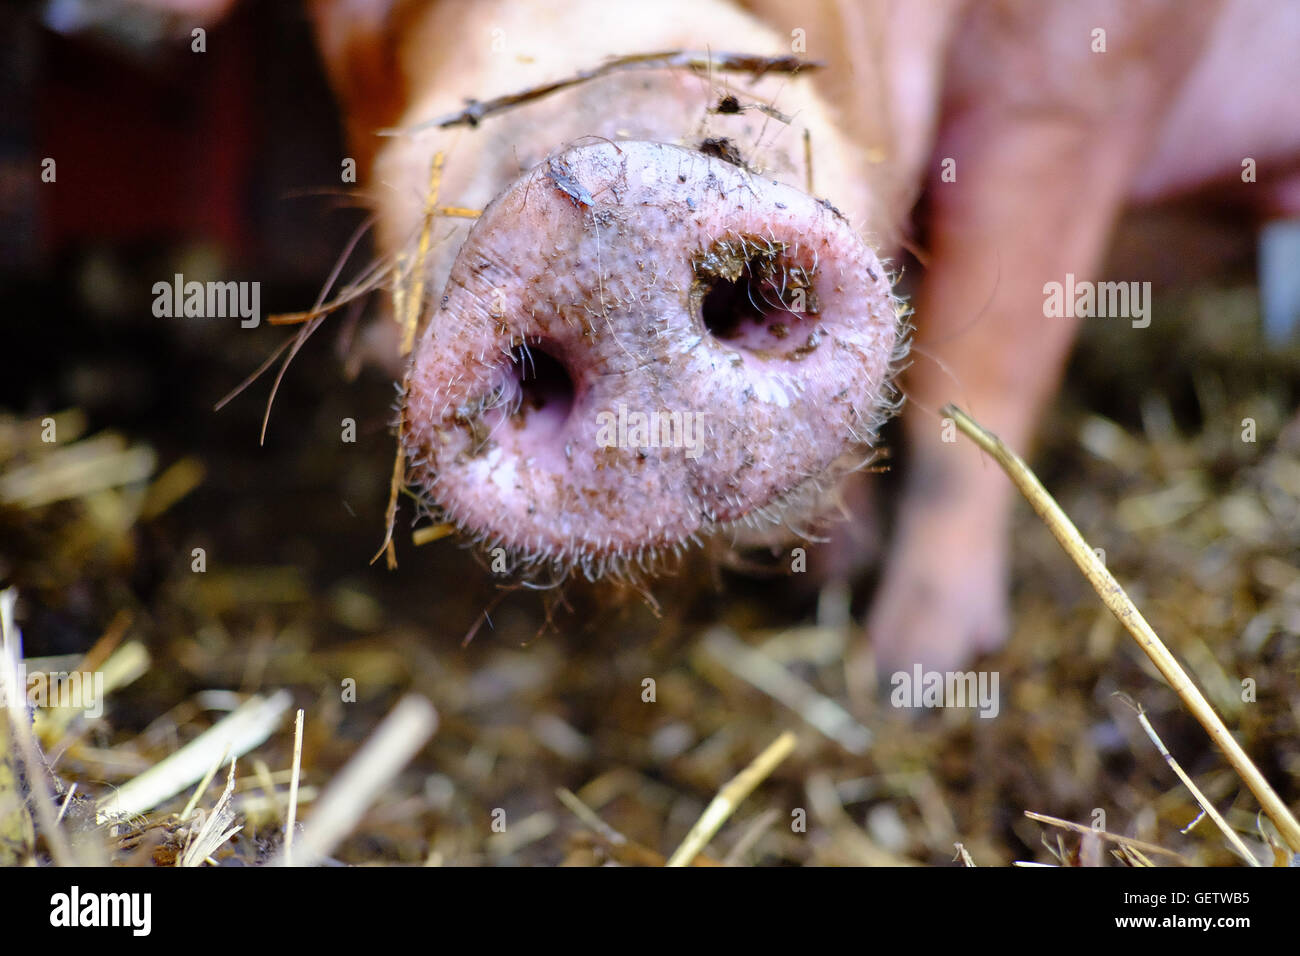 Close up of a pig's snout showing the leg of the pig in the background surrounded by straw. - Stock Image